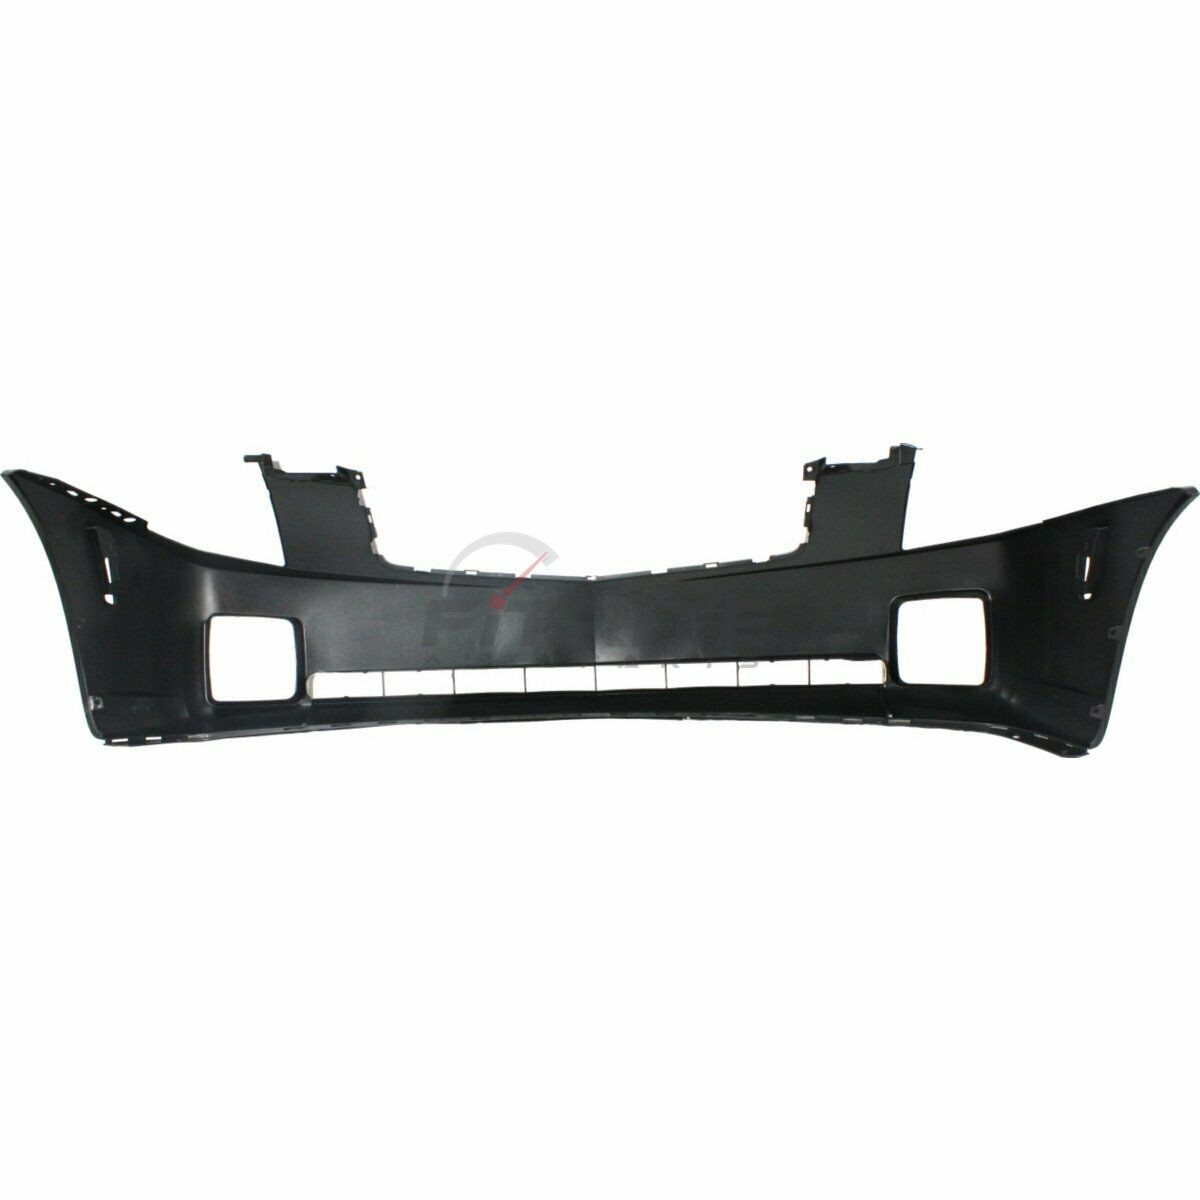 NEW FRONT BUMPER COVER FOR 2003-2007 CADILLAC CTS